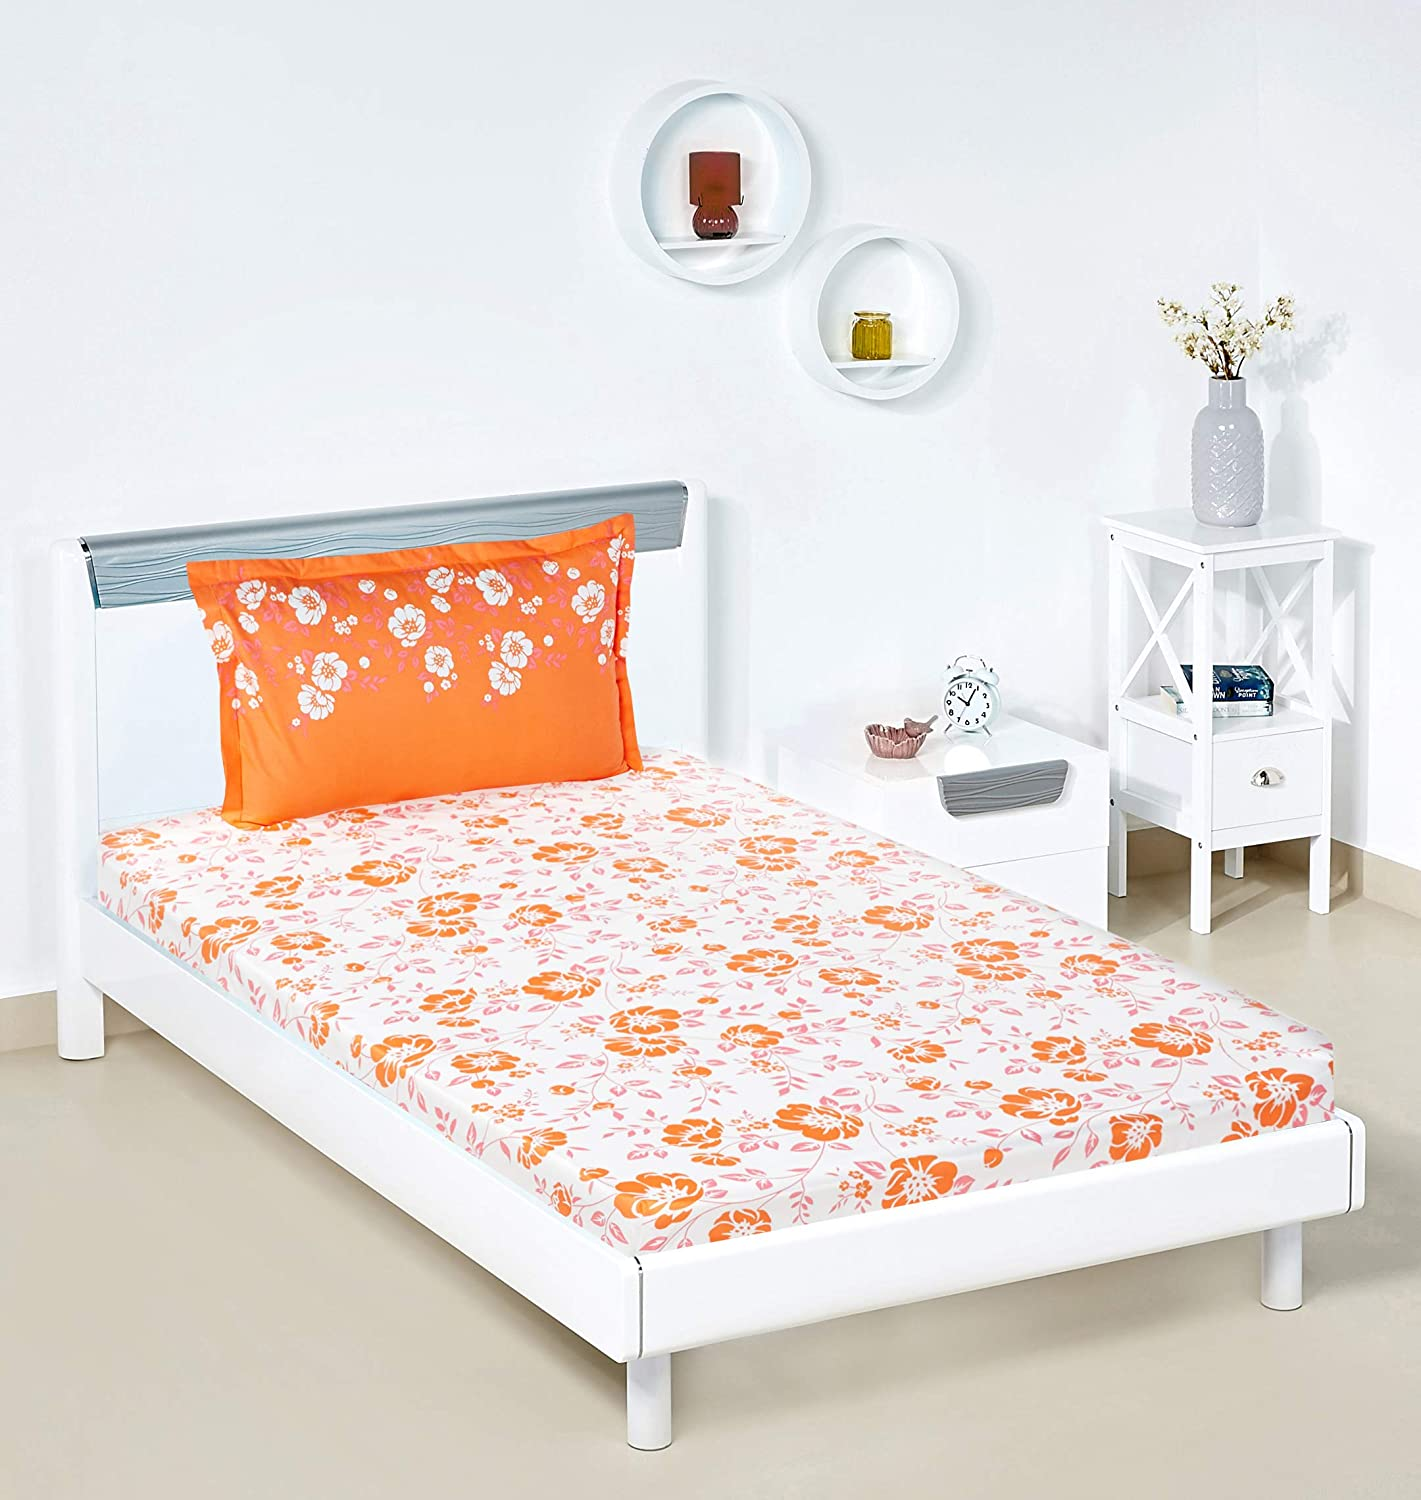 cded237f83 Amazon Brand - Solimo Jasmine Zest 144 TC 100% Cotton Single Bedsheet with 1  Pillow Cover, Orange: Amazon.in: Home & Kitchen